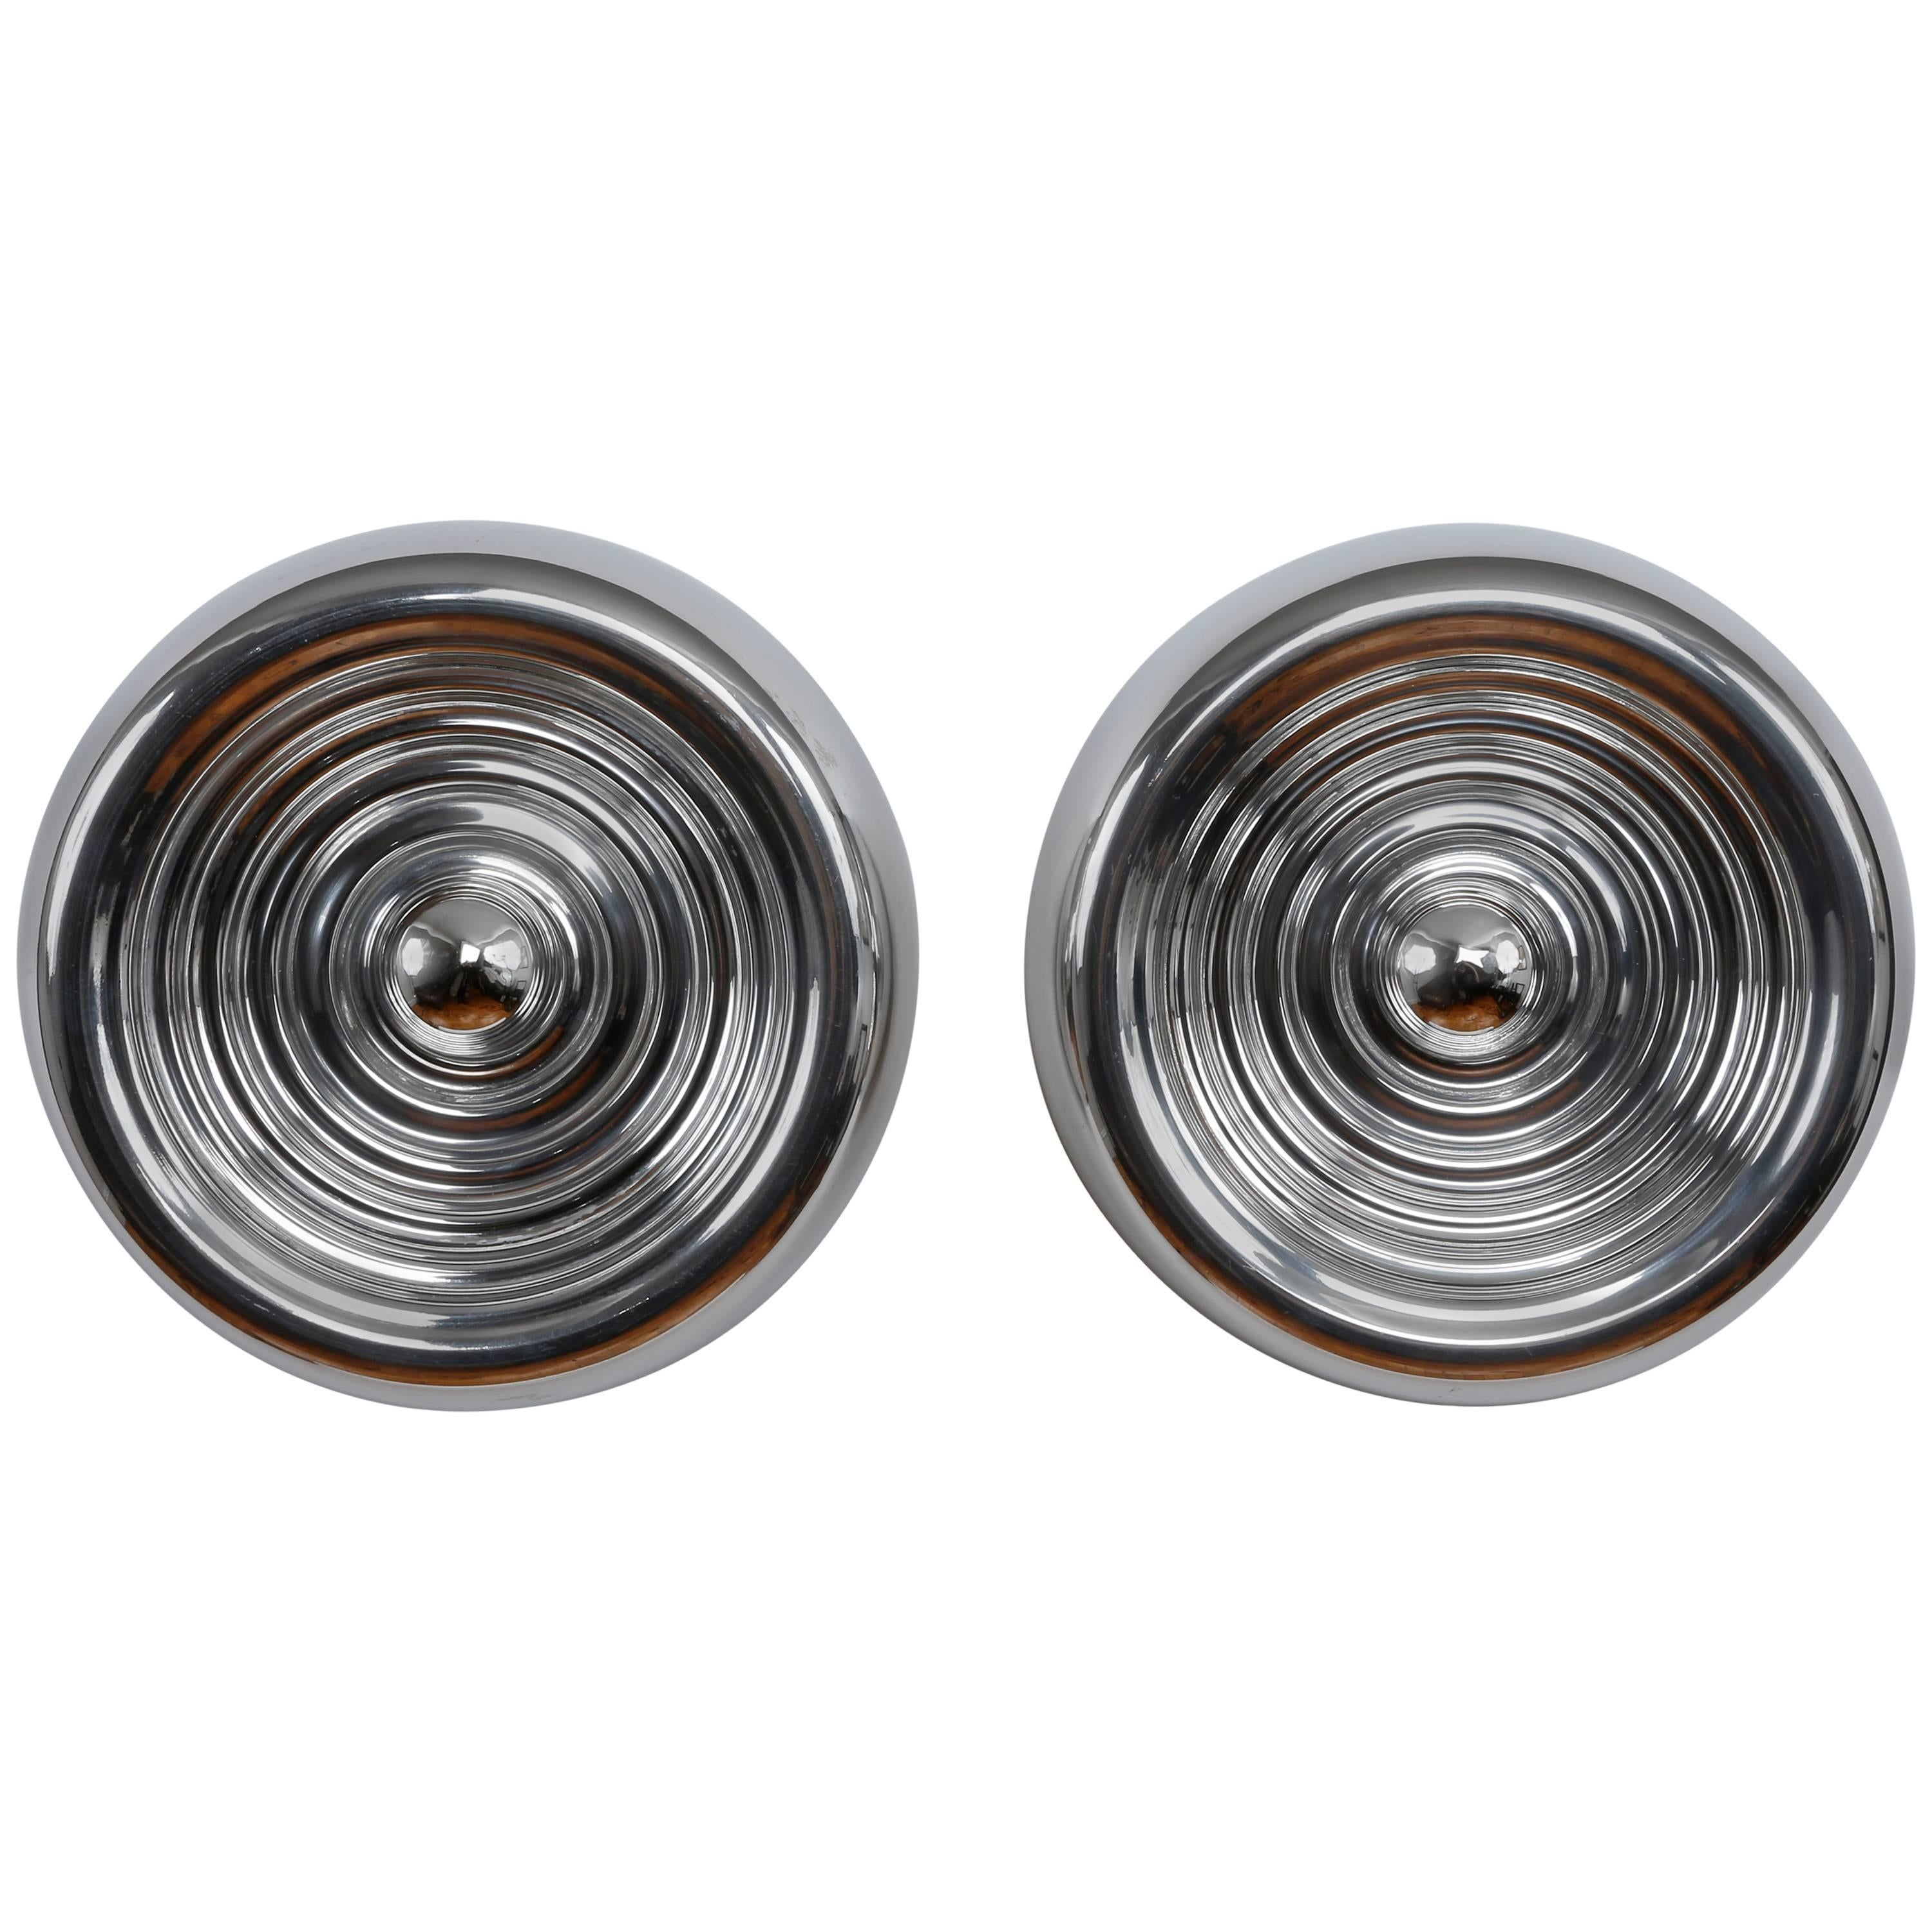 """Pair of """"Padina"""" flush mounts or wall lamps by Achille Castiglioni for Flos"""